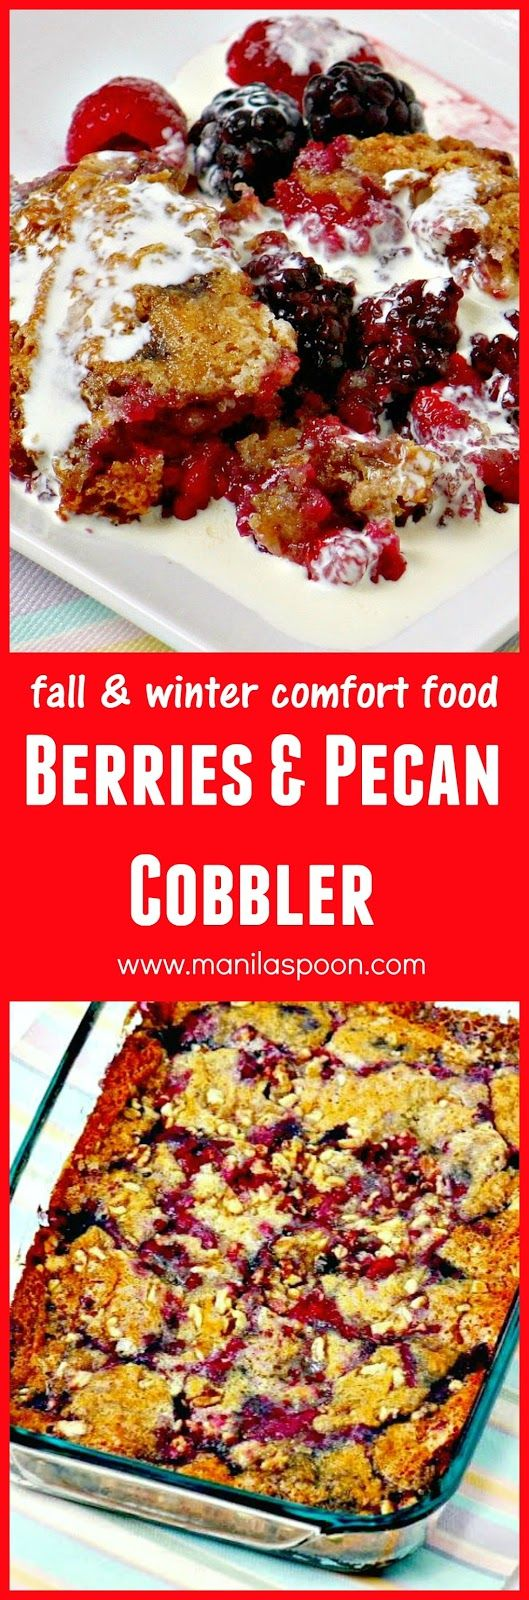 I have brought this dessert to gatherings with family and friends and it's always a big winner! Fruity deliciousness to warm your heart and your tummy this fall and winter   - Mixed Berries and Pecan Cobbler